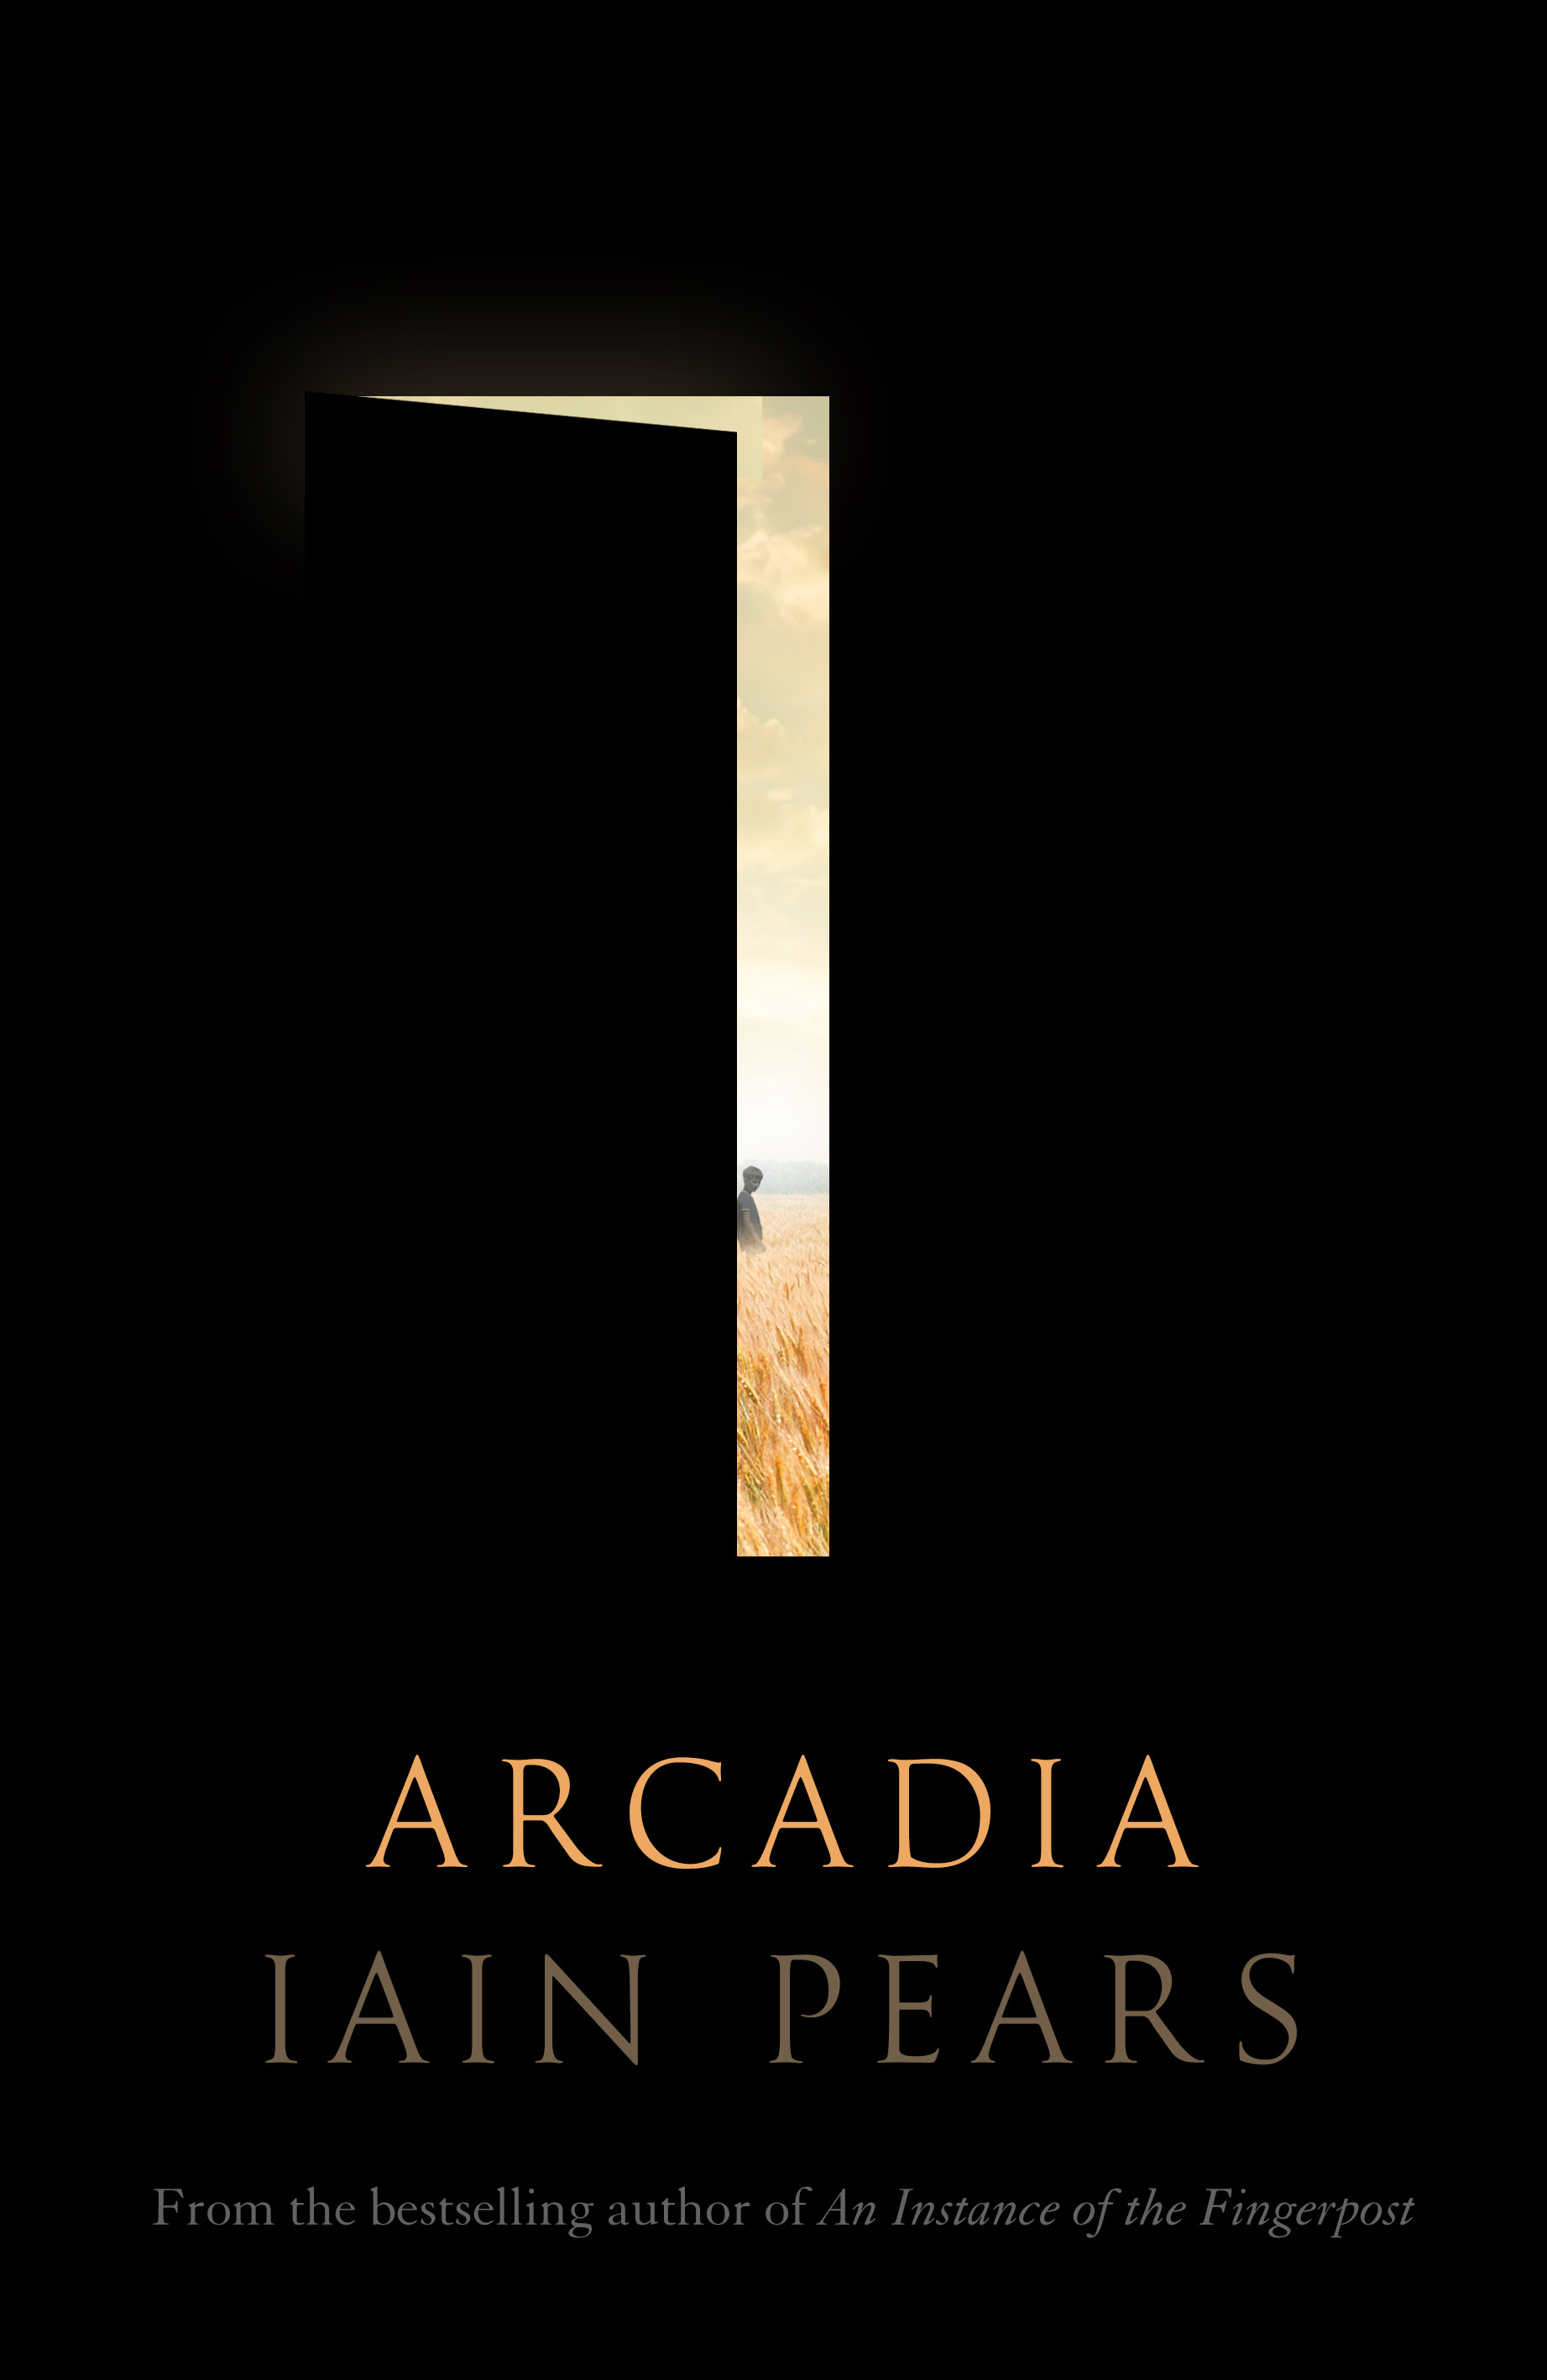 Choose your favorite way to read Arcadia by Iaian Pears